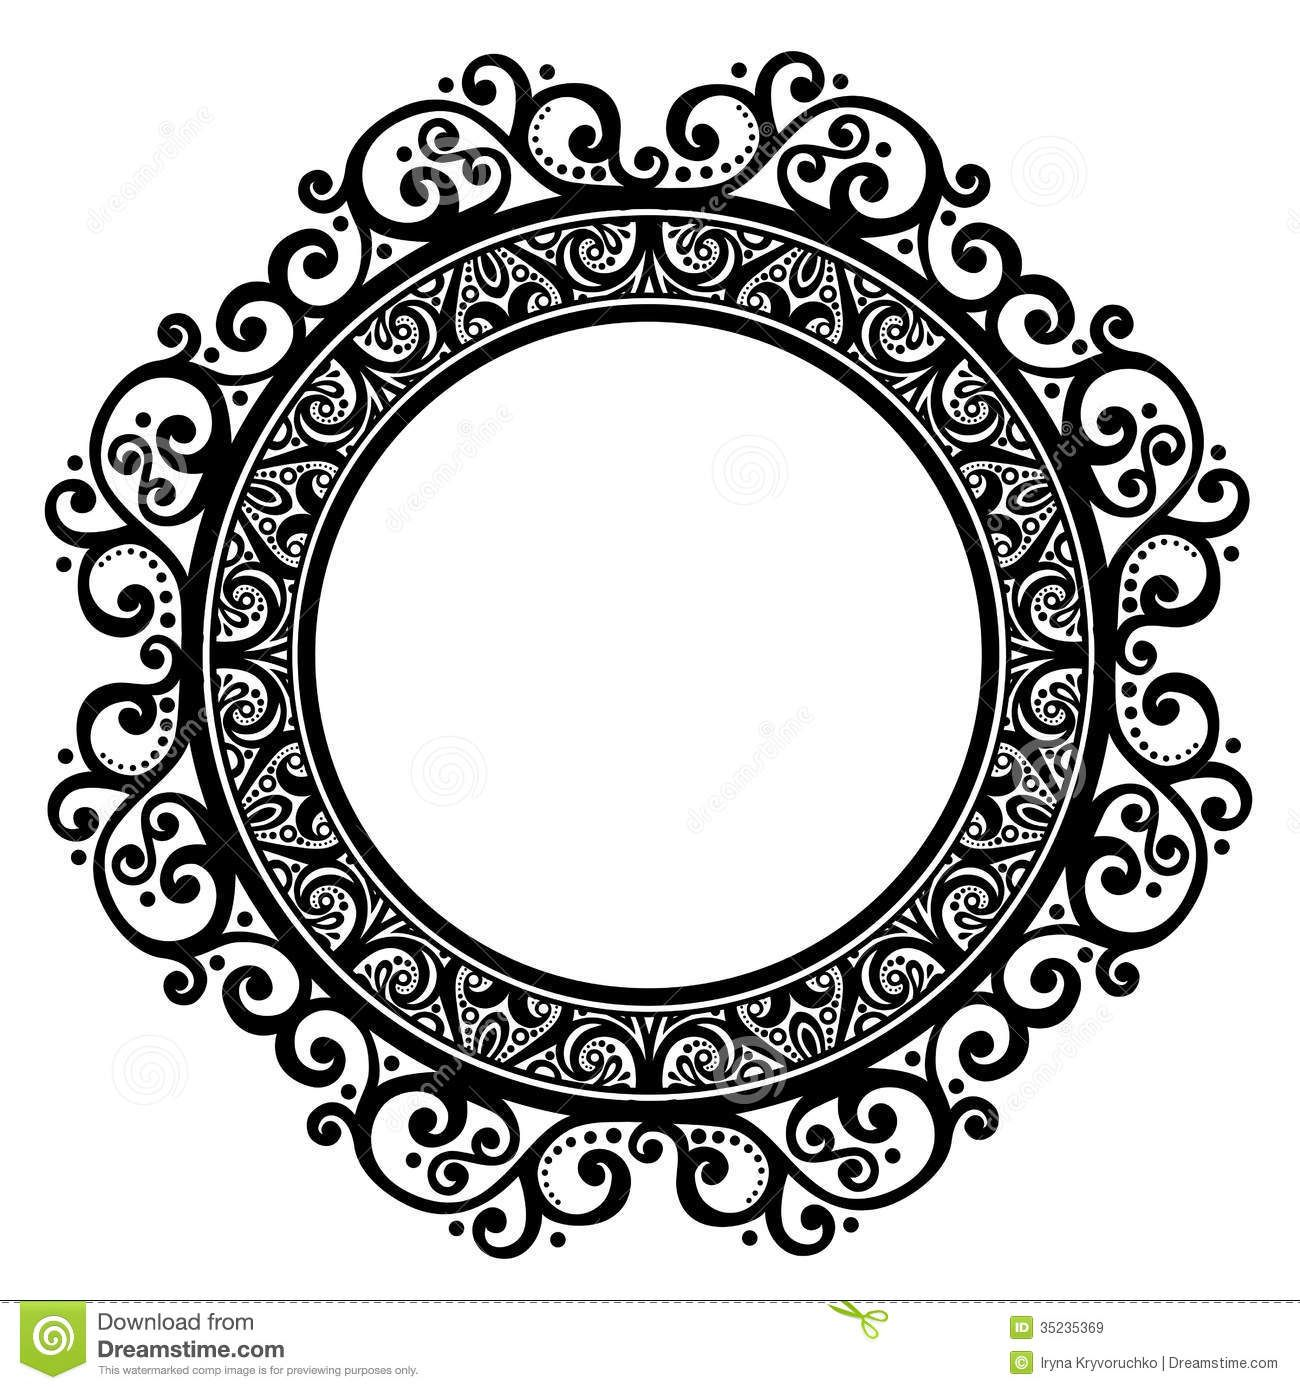 Decorative Round Vector Frames Collection - Download Free Vector ...